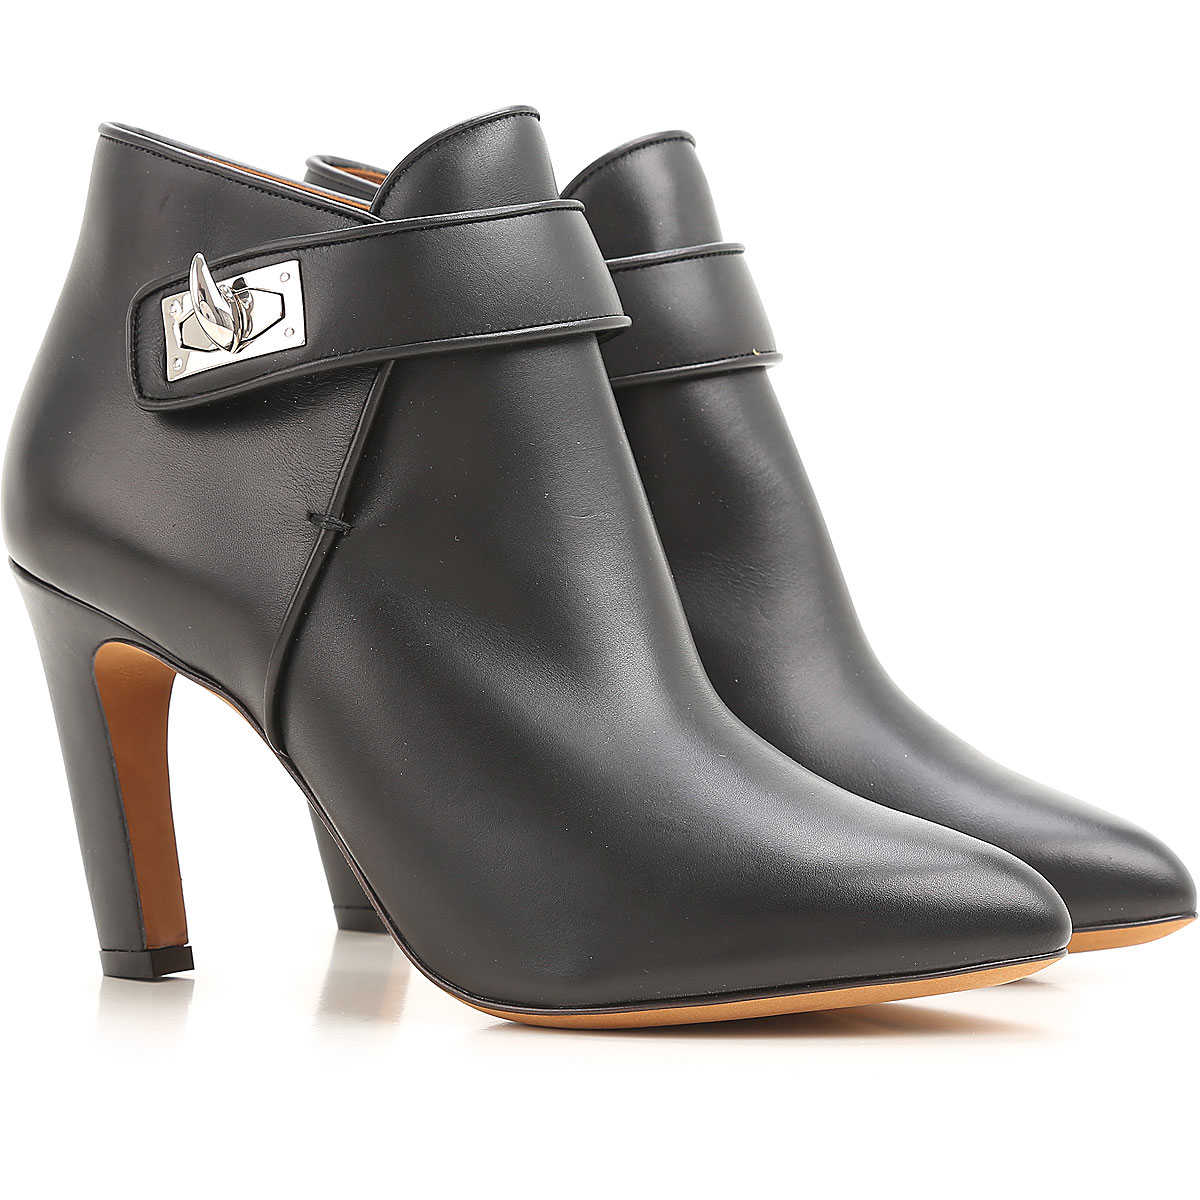 Givenchy Boots for Women Booties On Sale in Outlet SE - GOOFASH